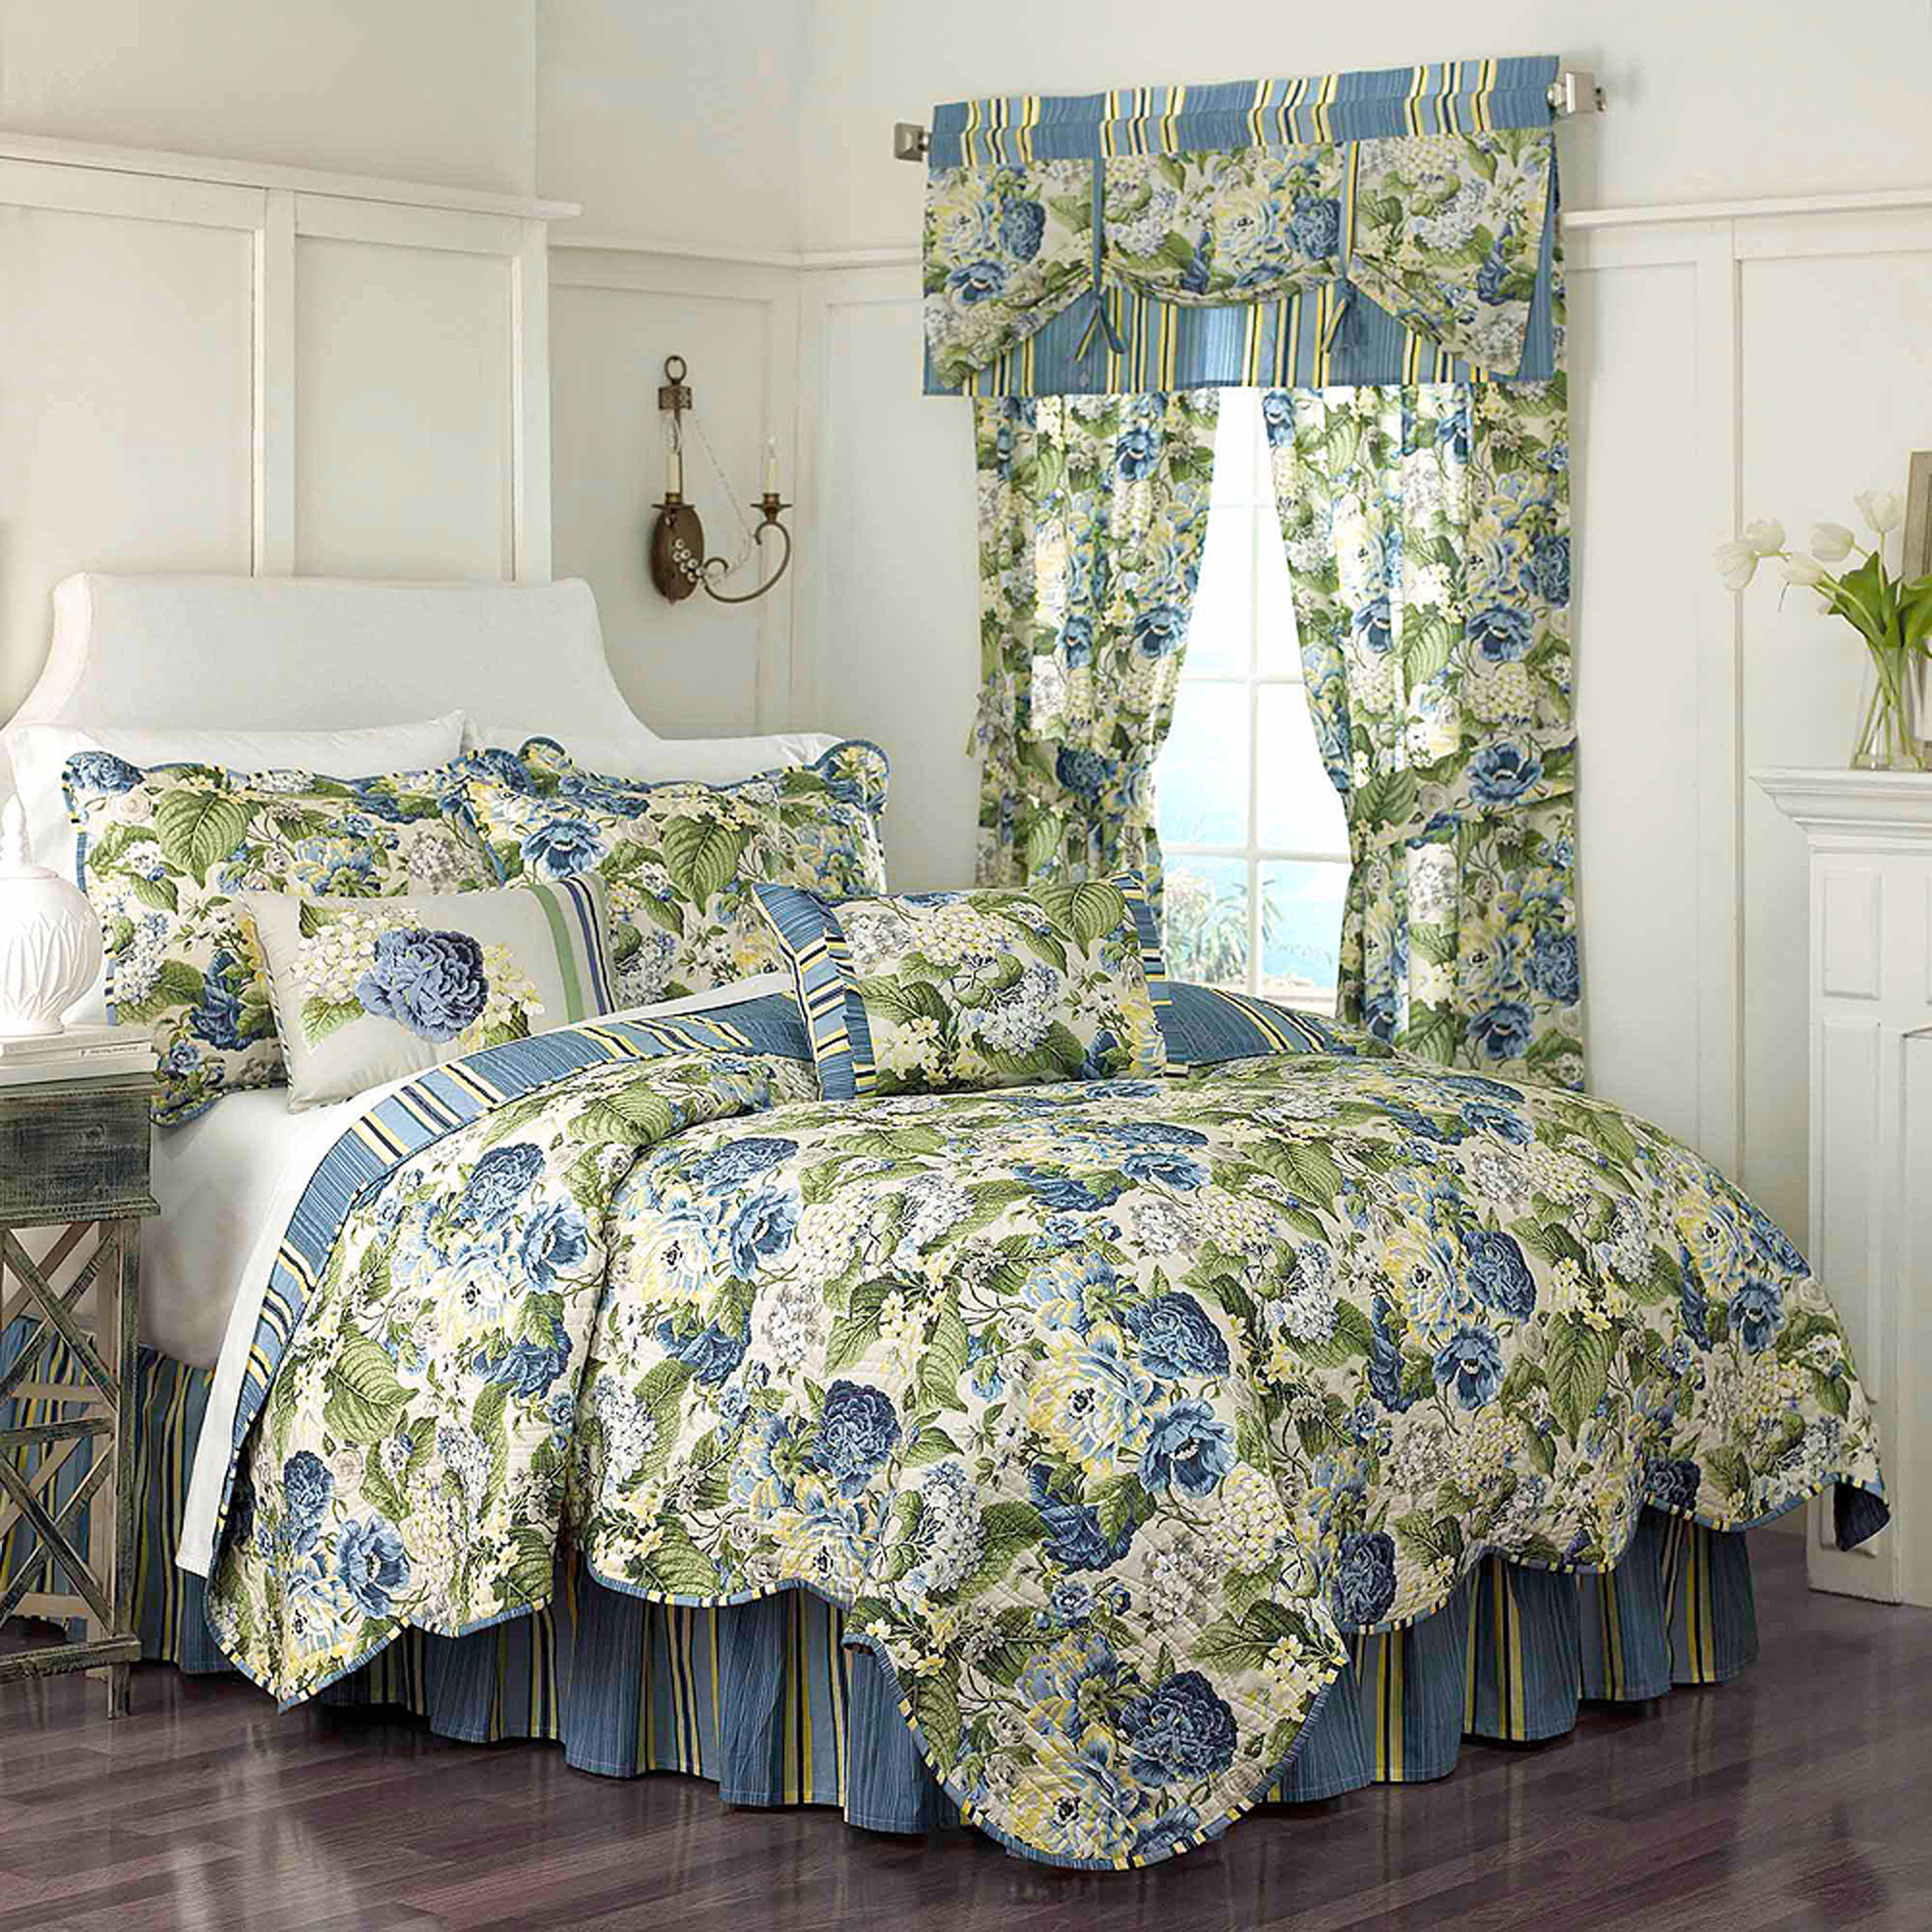 Floral Flourish Bedding Quilt Set